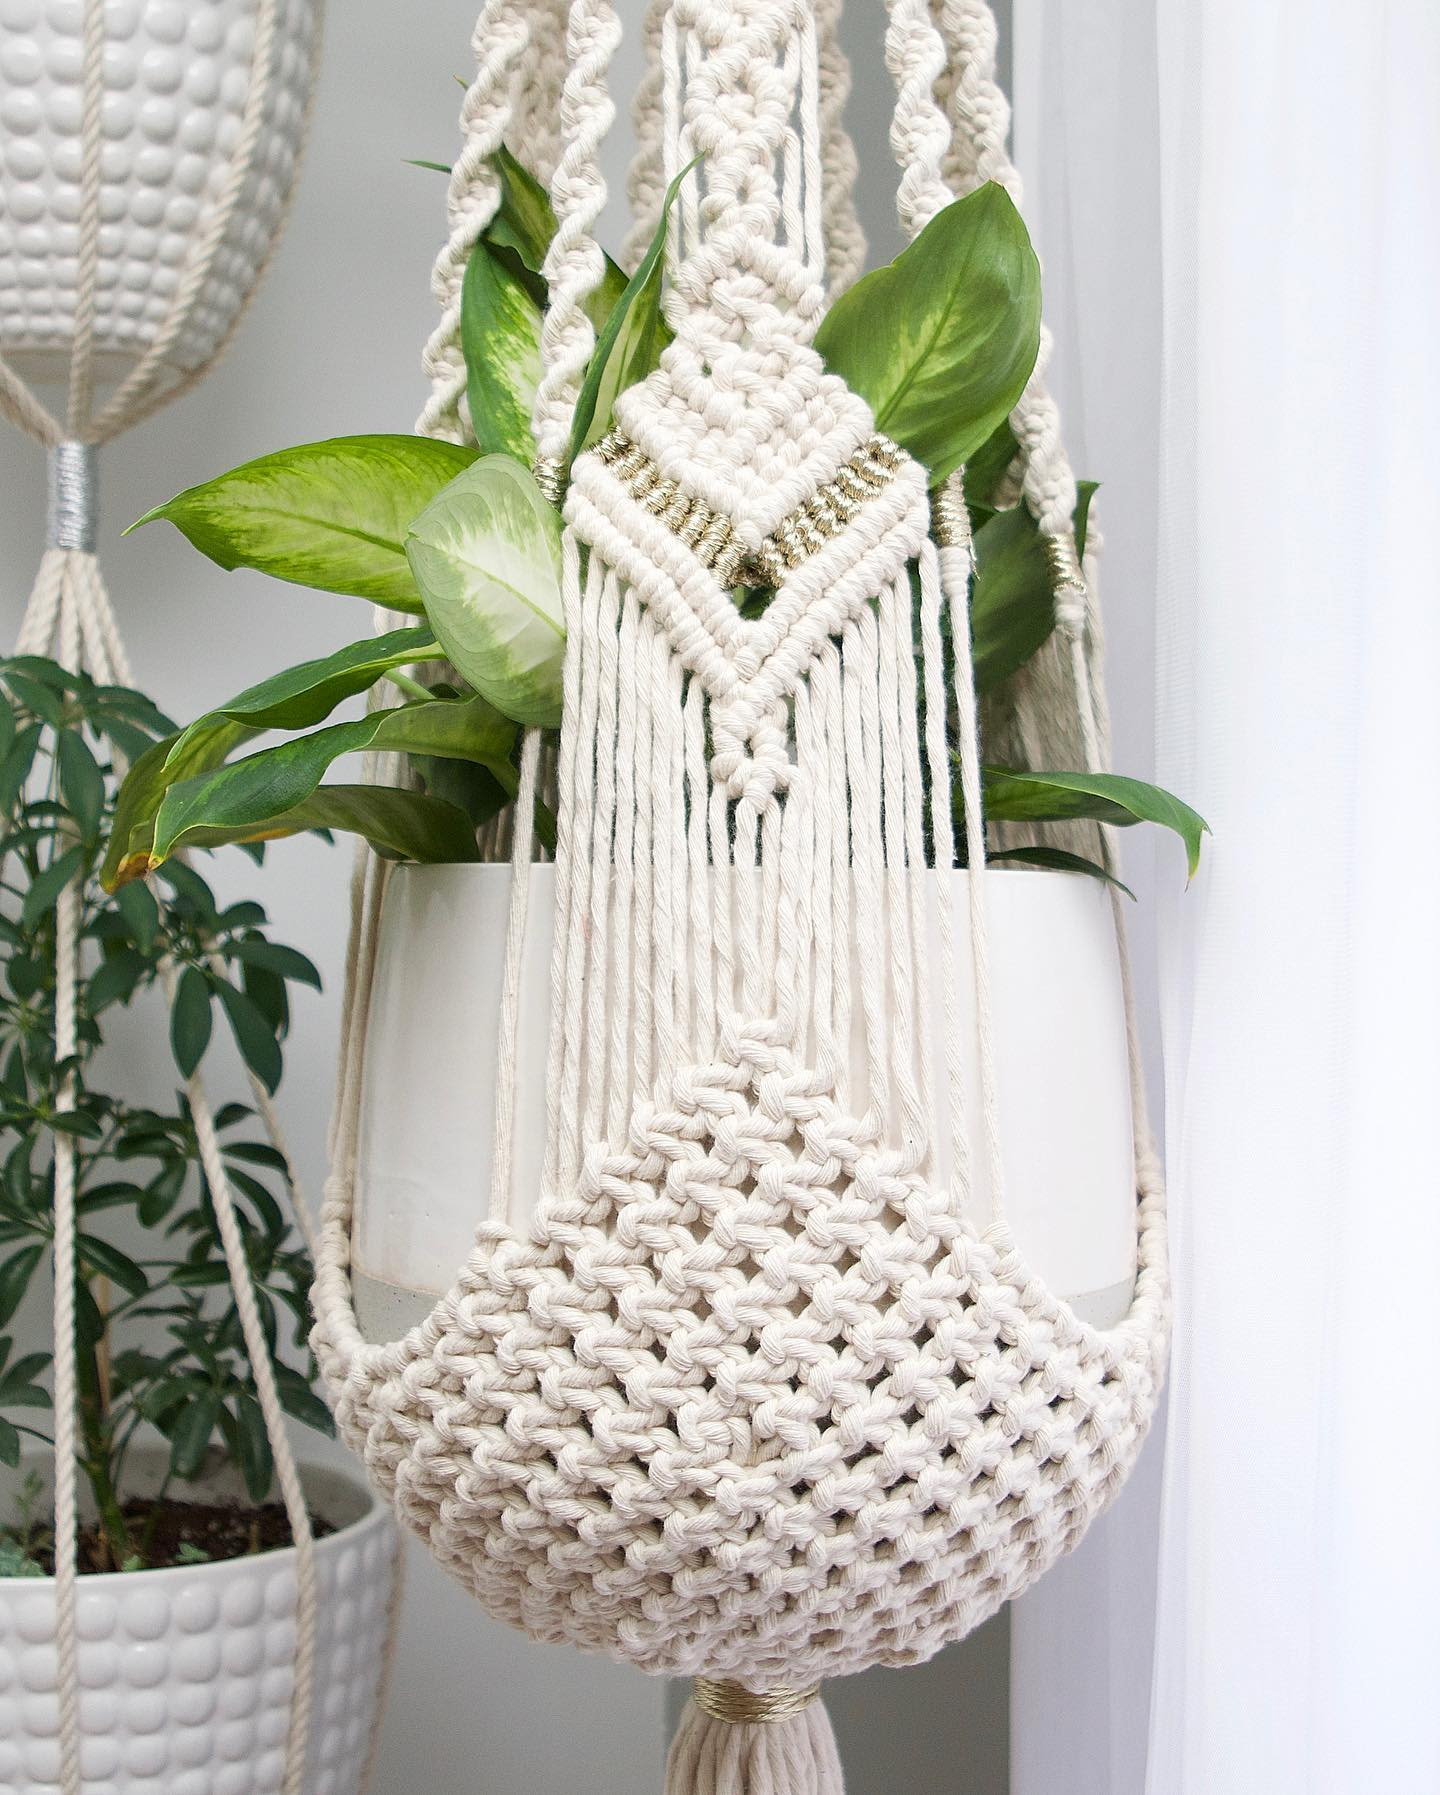 Vintage Style Macrame Plant Hanger By A Modern Take Fiber Art Seen At Private Residence Texas City Wescover